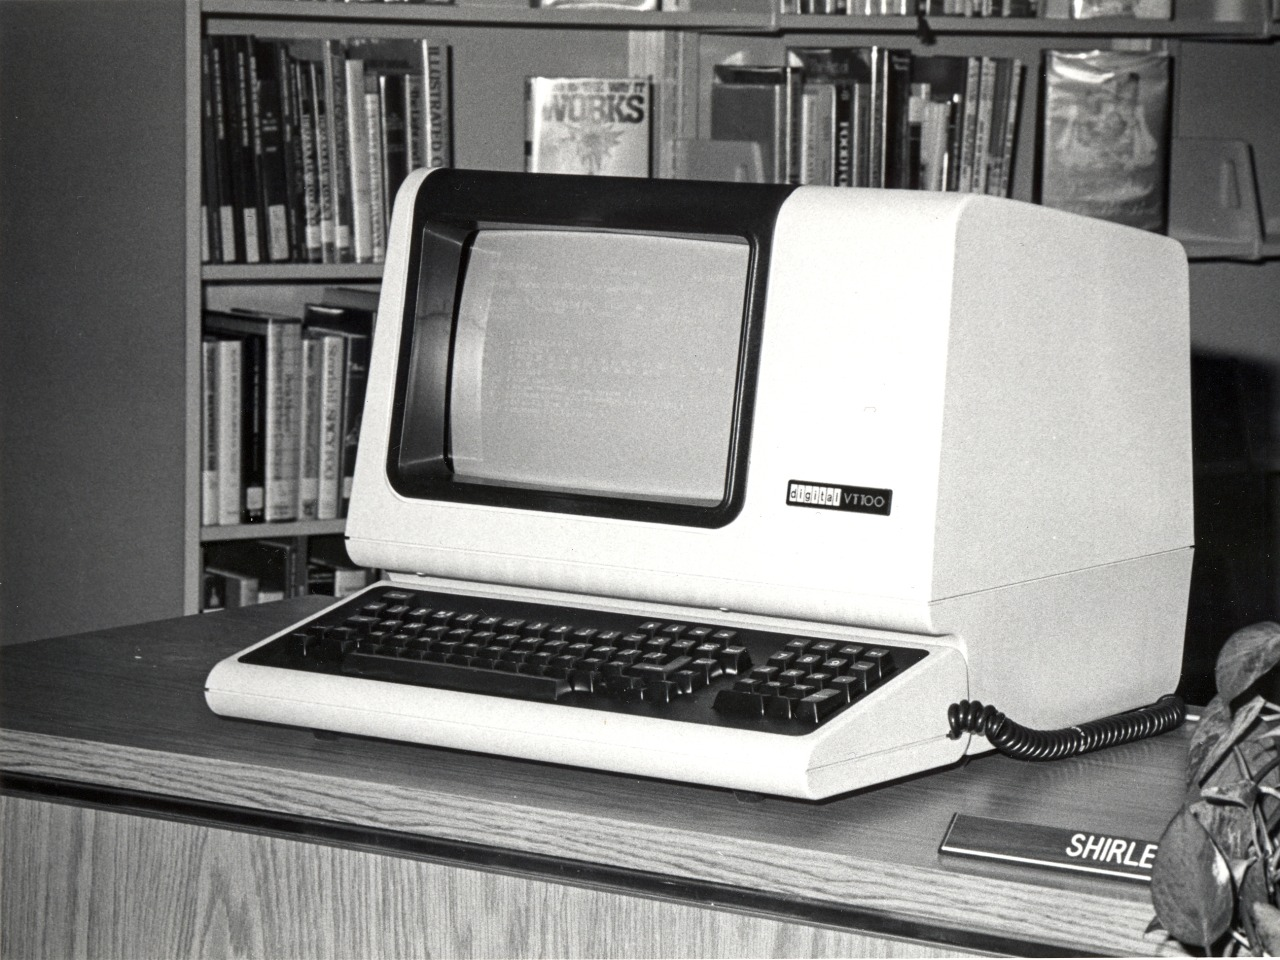 One of Cleveland Public Library's earliest Online Public Access Catalog (OPAC) computers. Experimental use began in 1980. 1.2 million titles were online by 1982.